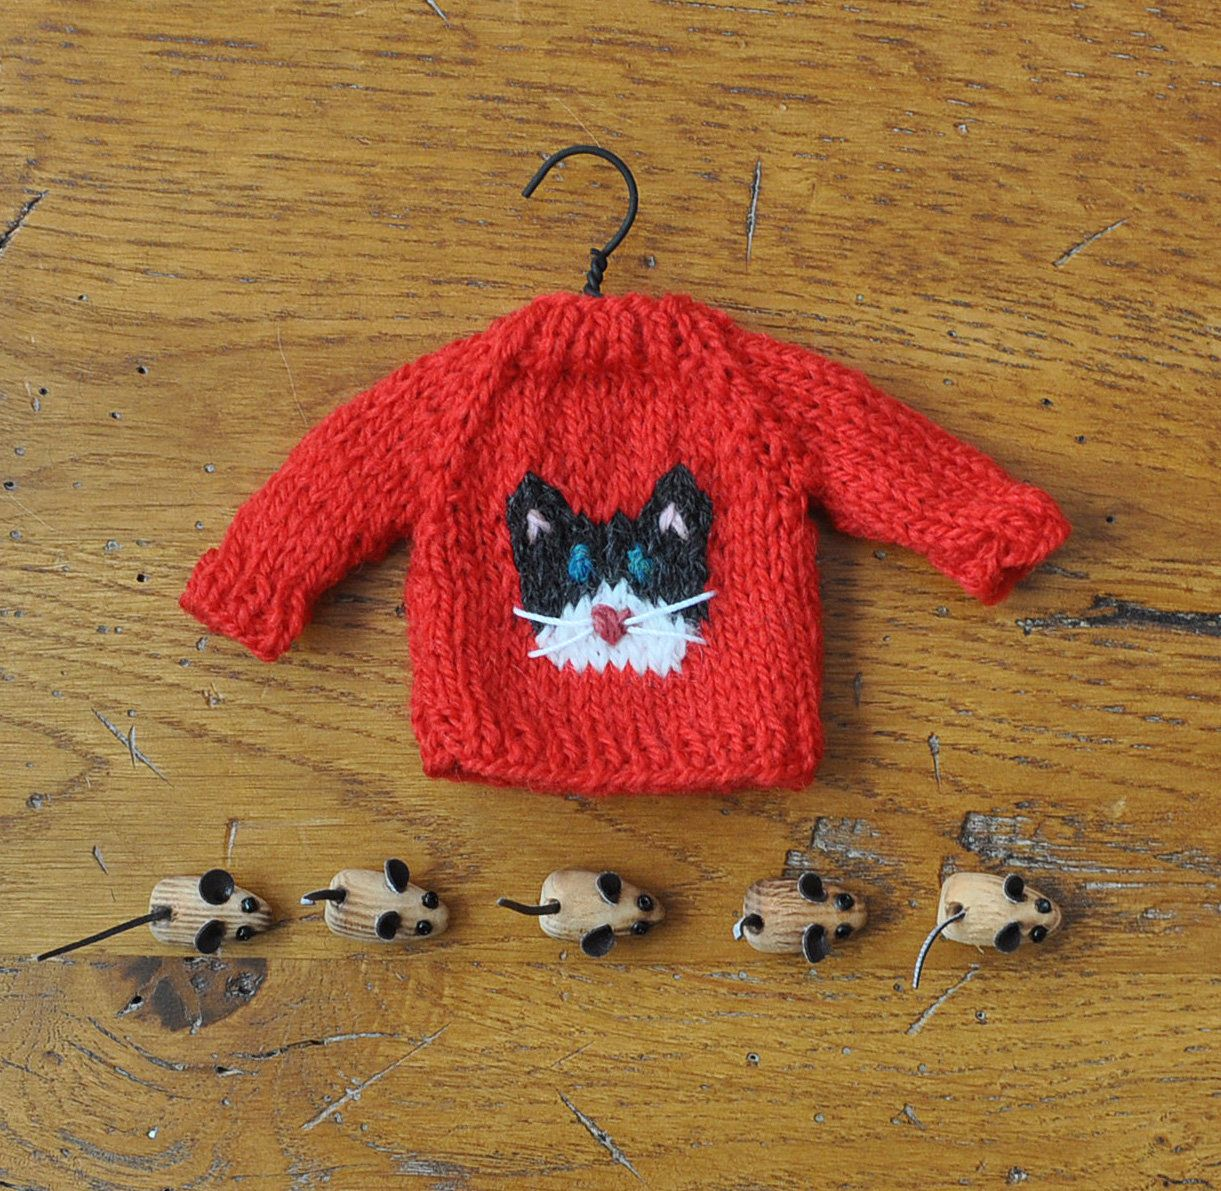 Stocking Sweater Hand-Knit Ornament